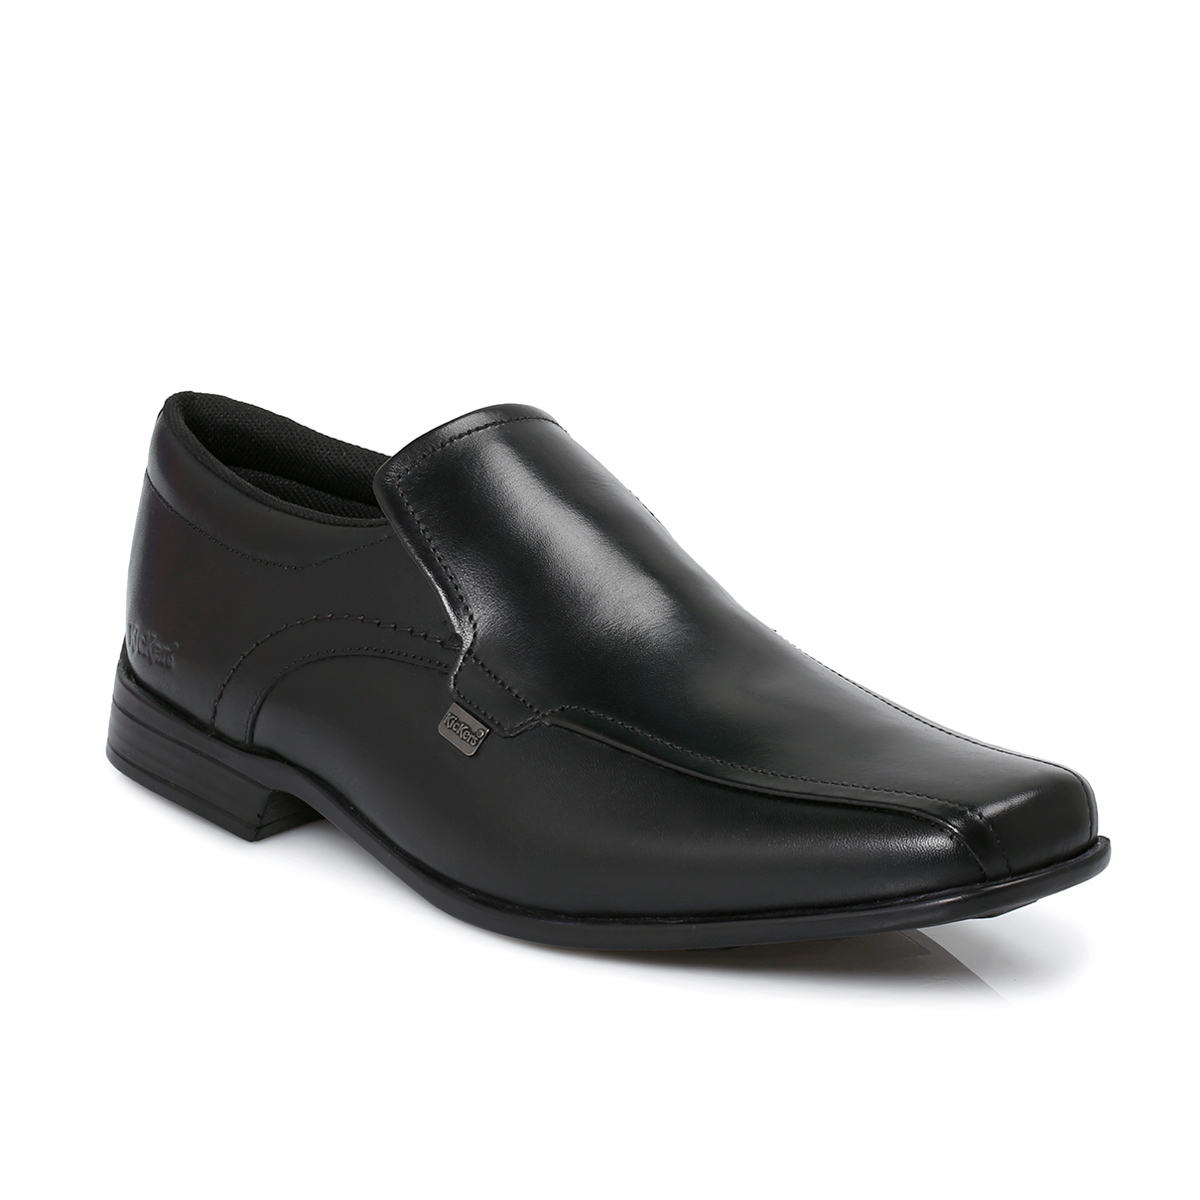 Black. White. Gray. Brown. Red. Multicolor. Beige. Green. See more colors. Price $ to $ Go. Non Slip Work Shoes. Clothing. Shoes. Non Slip Work Shoes. Showing 48 of 61 results that match your query. Dr. Scholls Men's Griff Wide Width Slip Reistant Casual Shoe. Product Image. Price .